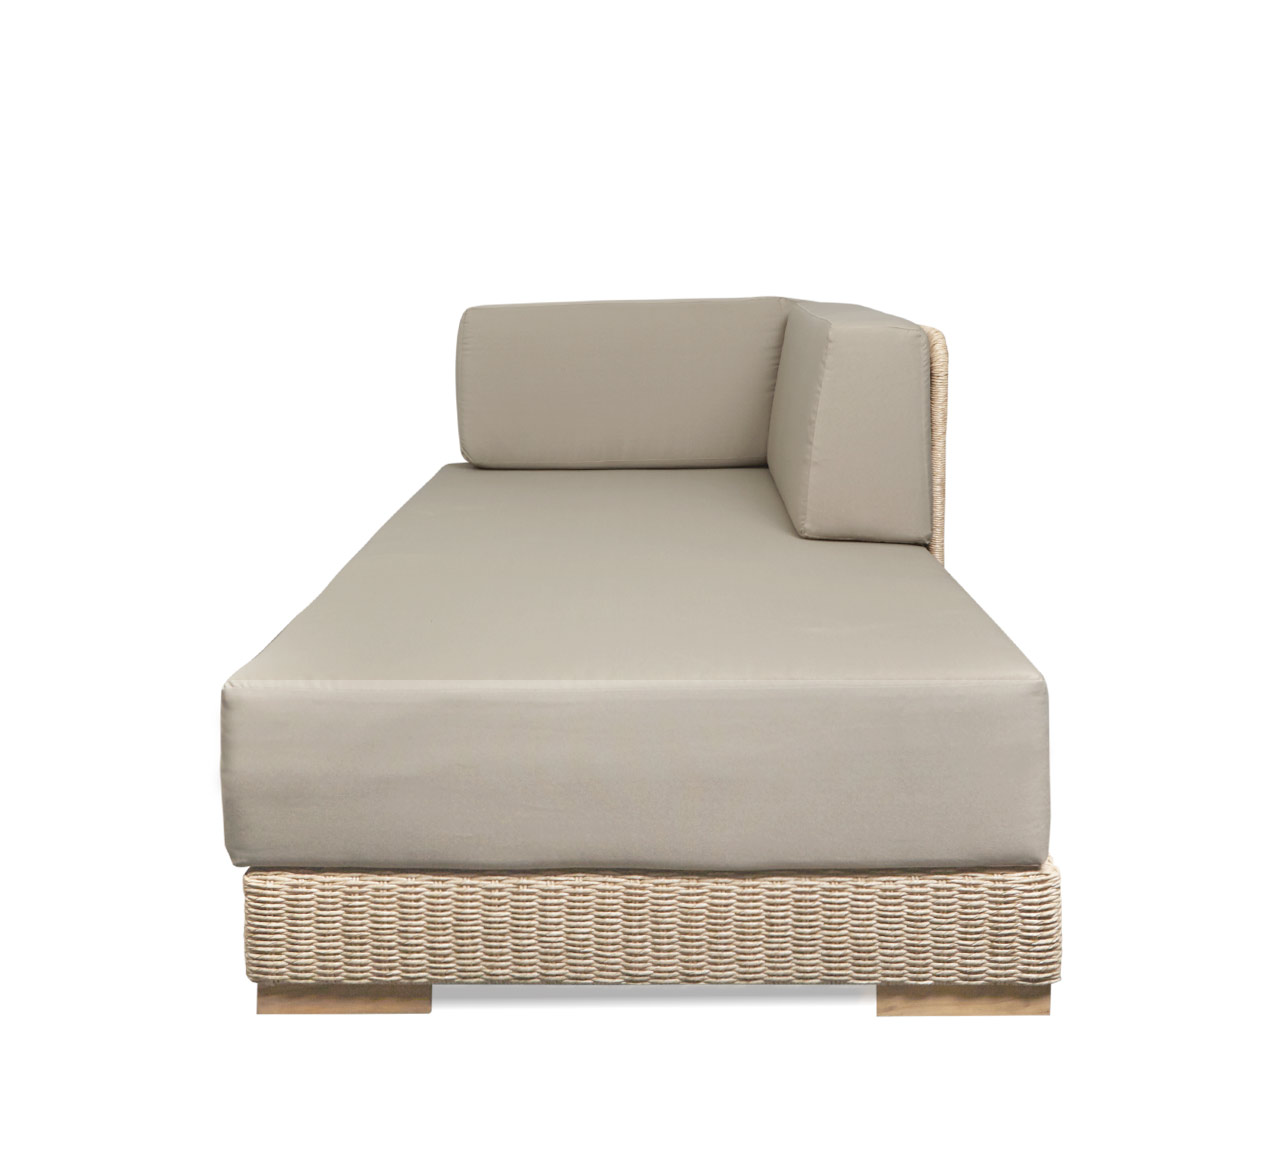 Djalin Sofa Right